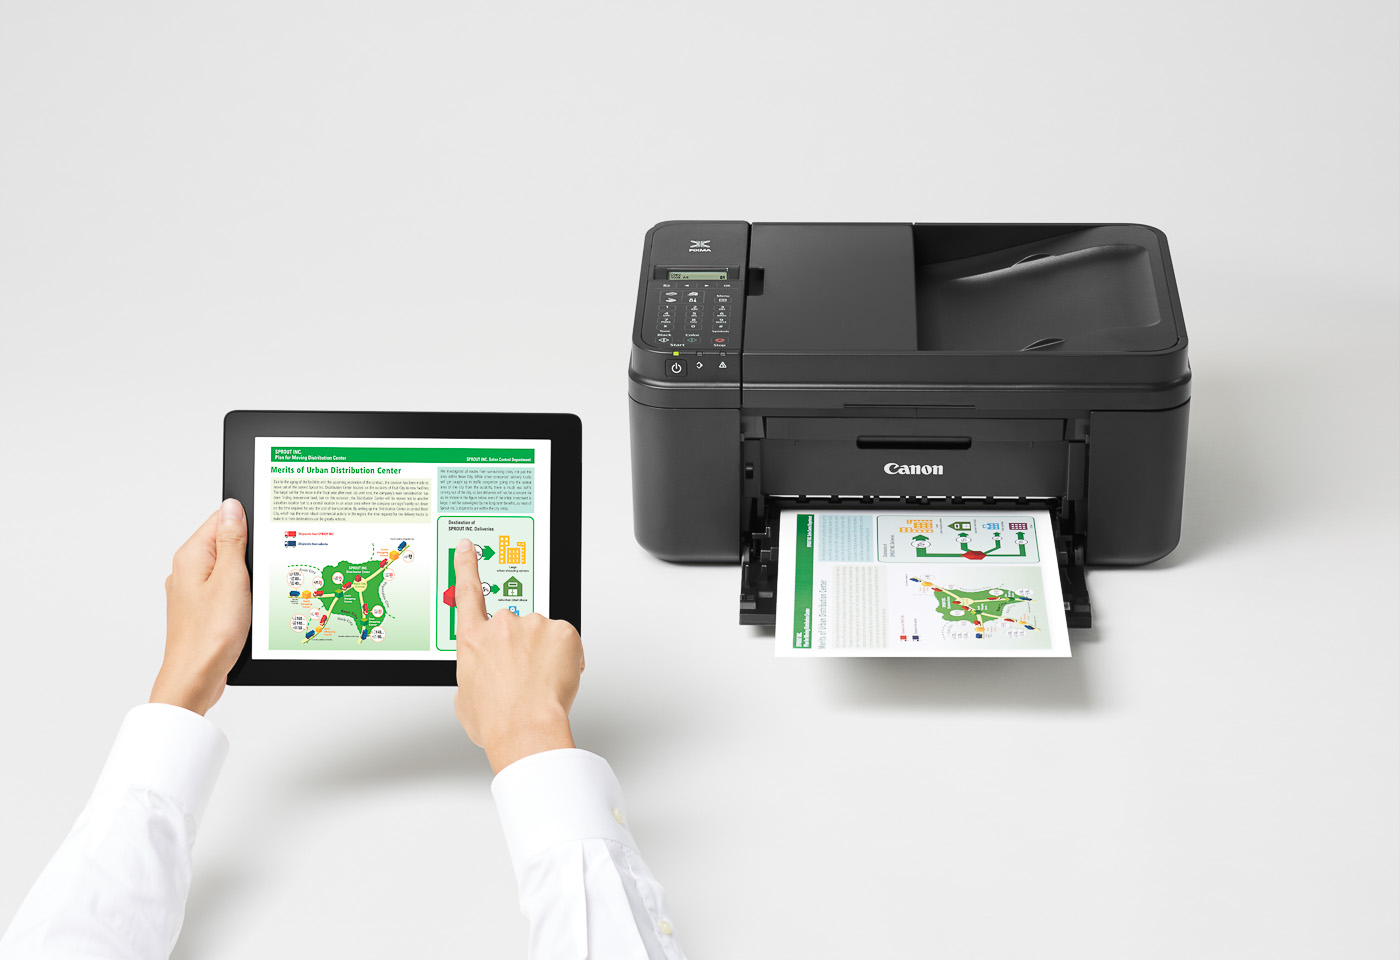 pixma mg496 printing from a tablet device